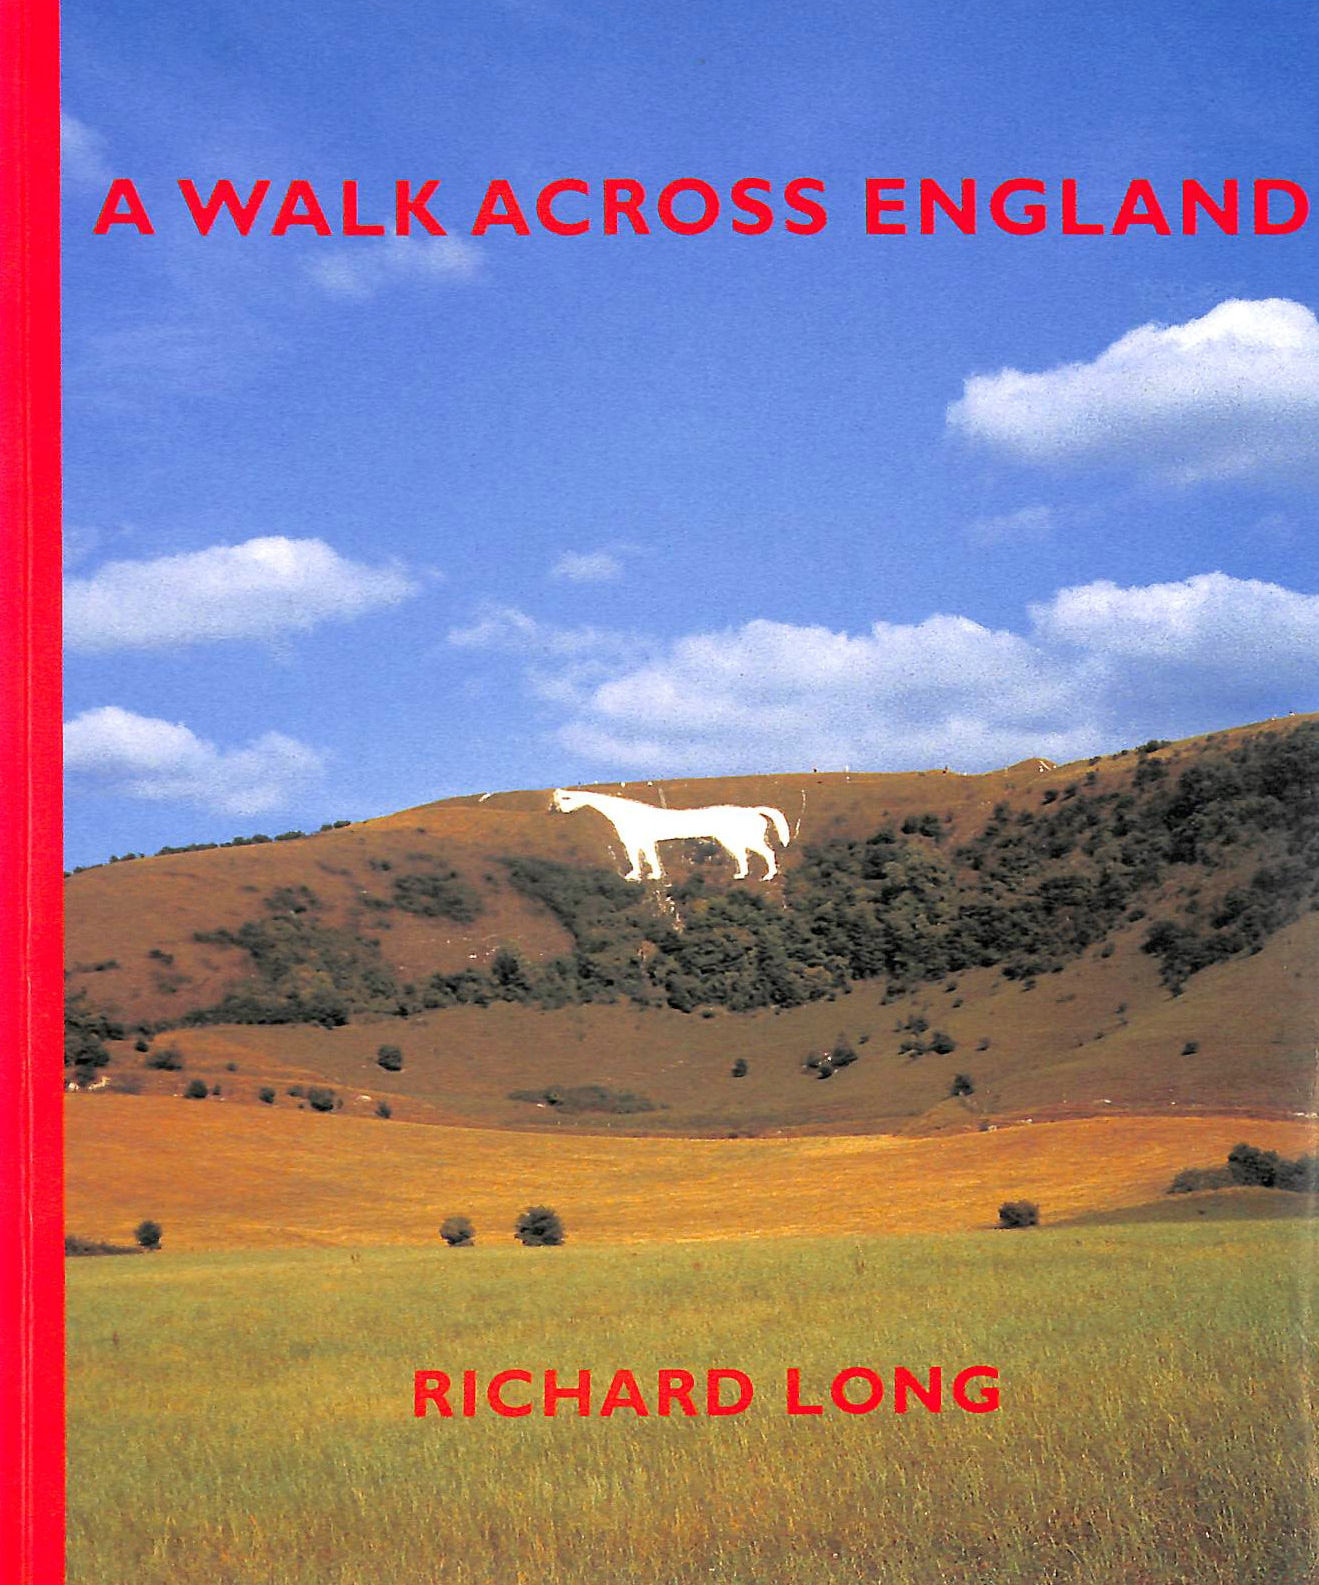 Image for A Walk Across England: A Walk of 382 Miles in 11 Days from the West Coast to the East Coast of England